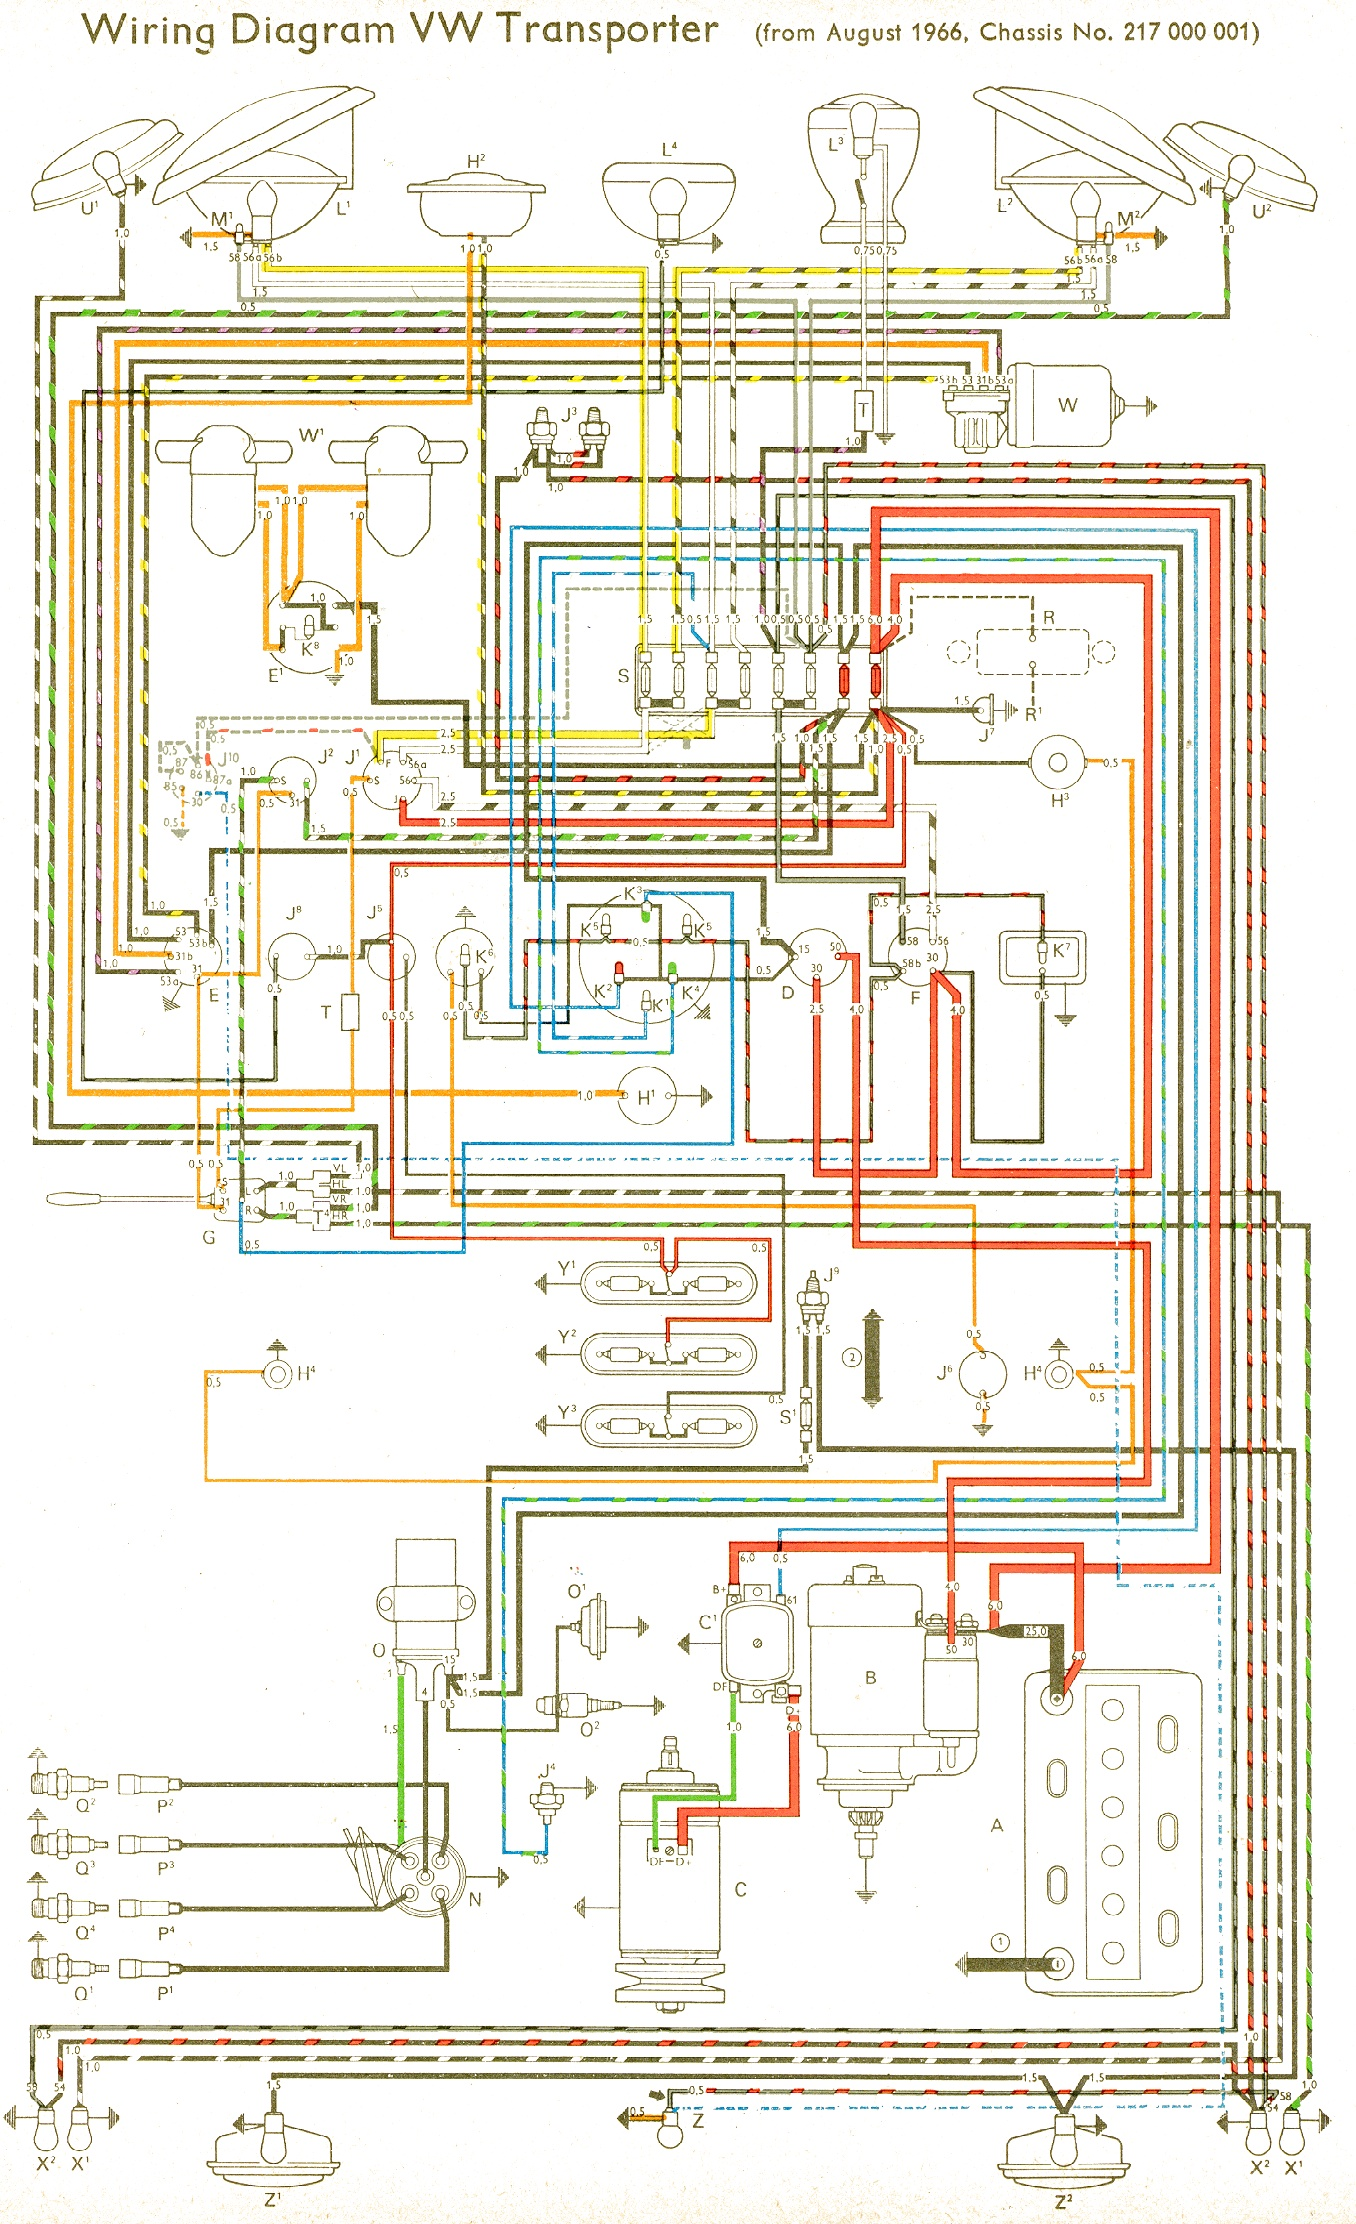 bus 66 vw wiring diagrams 1970 vw bug wiring diagram at panicattacktreatment.co